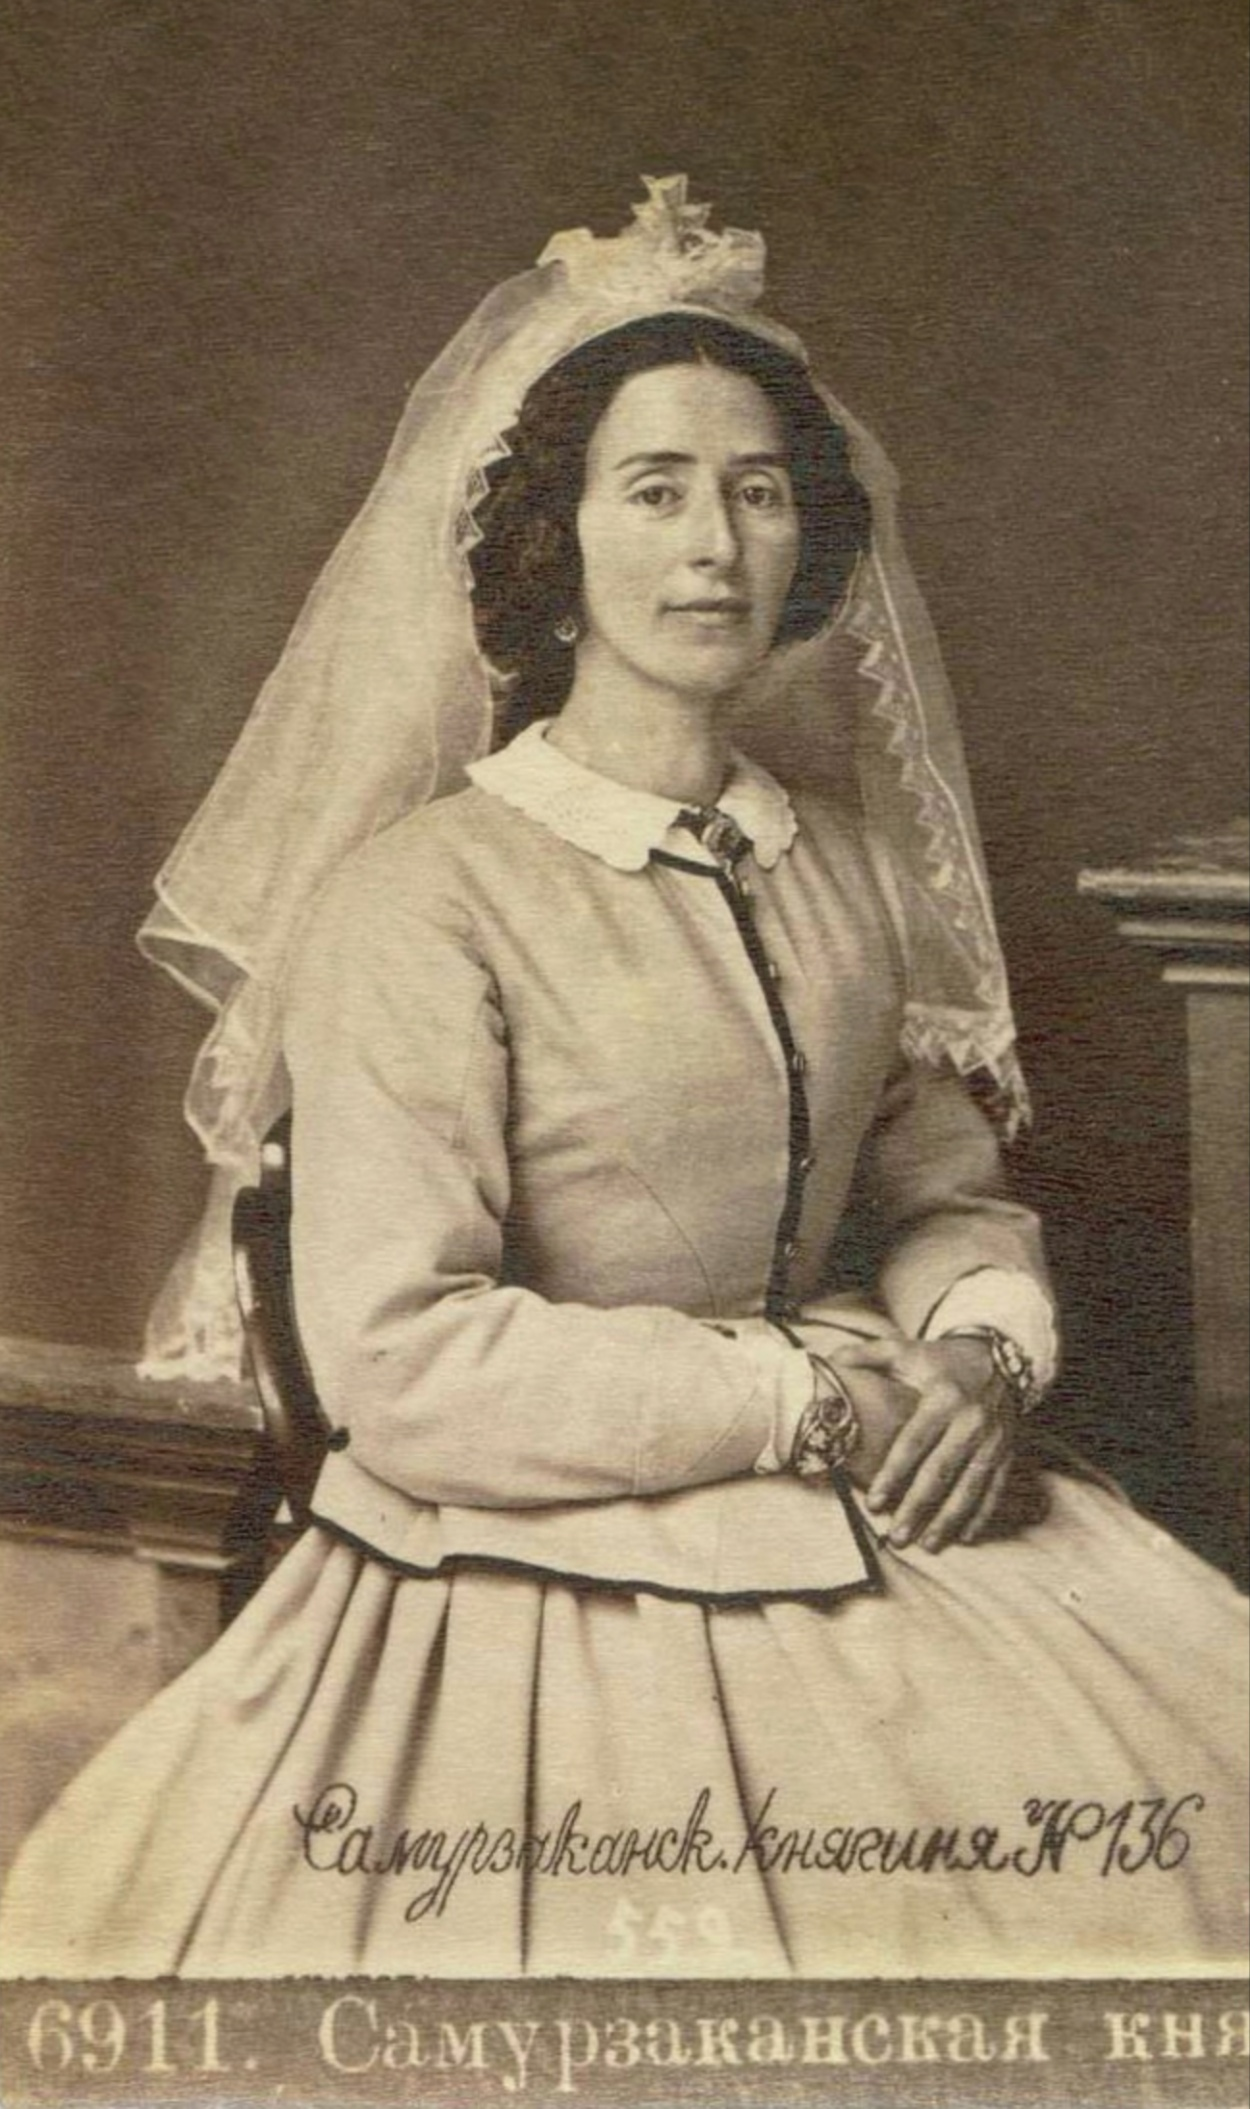 Samurzakan - Photo by Dmitri Yermakov (1846 –1916).